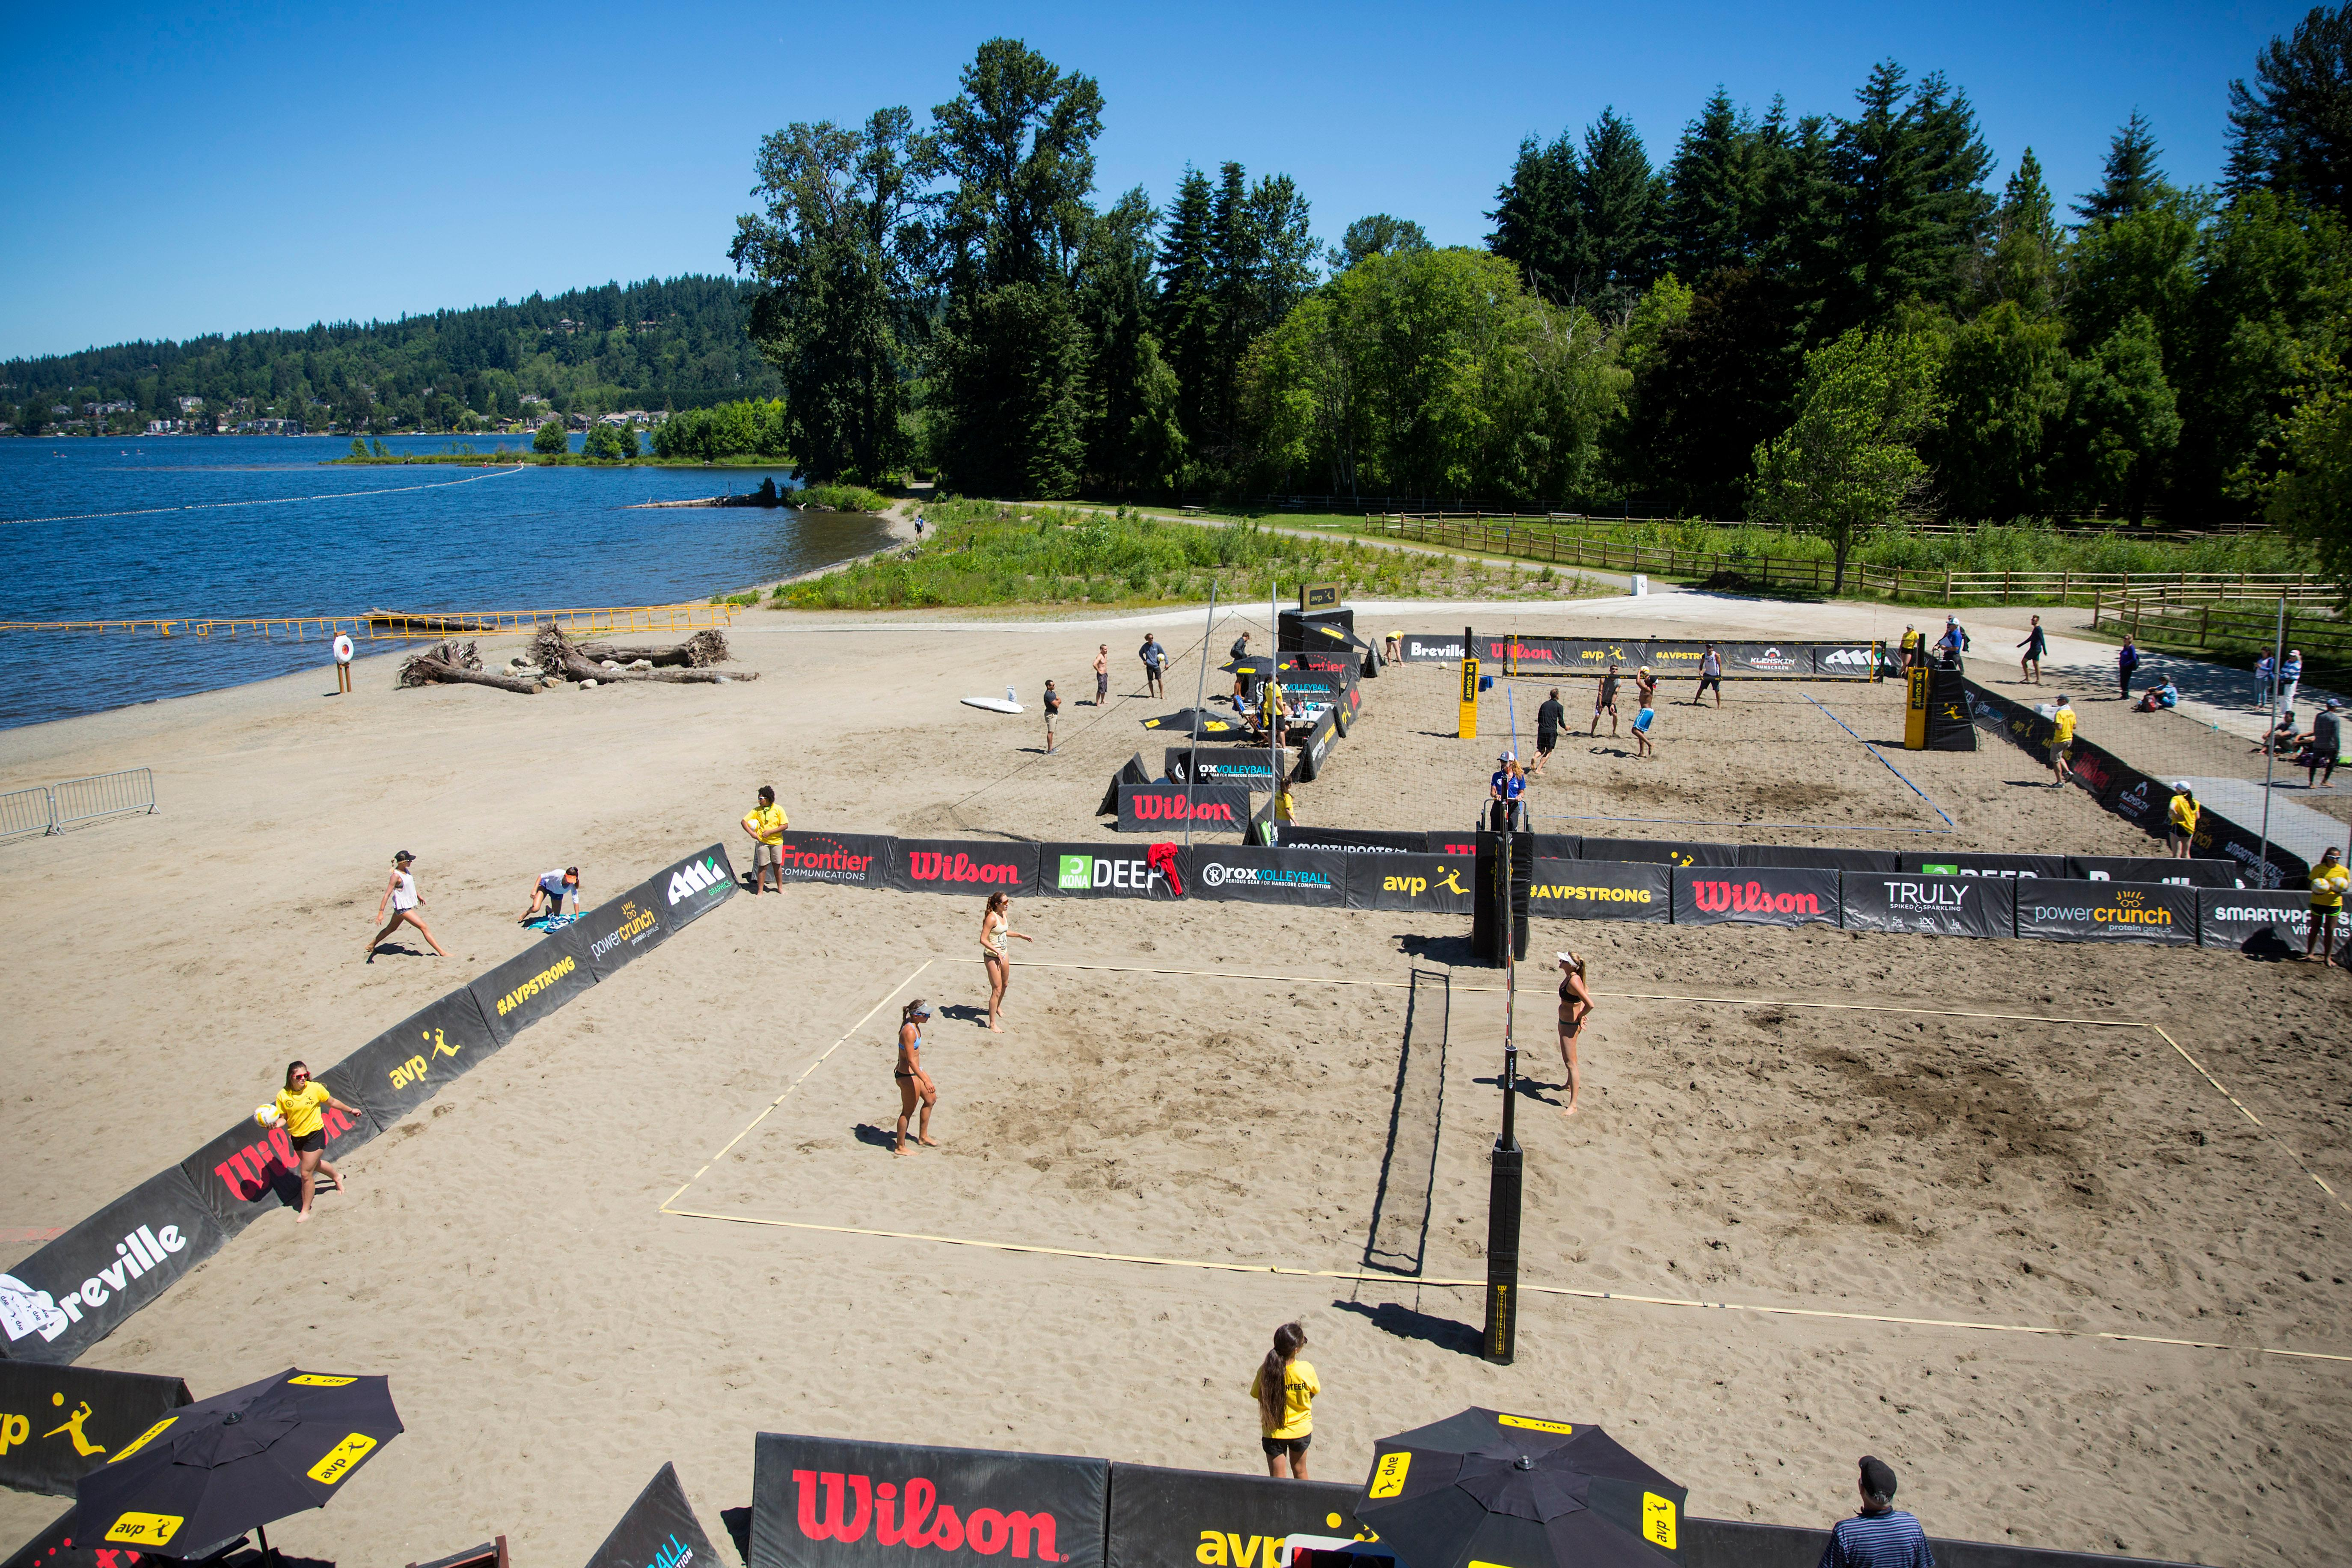 Volleyball atheletes take to the beach at Lake Sammamish State Park for the qualifiers of the AVP Seattle Open. The tournament will continue over the weekend, and the winners will walk away with a $150,000 prize. (Sy Bean / Seattle Refined)